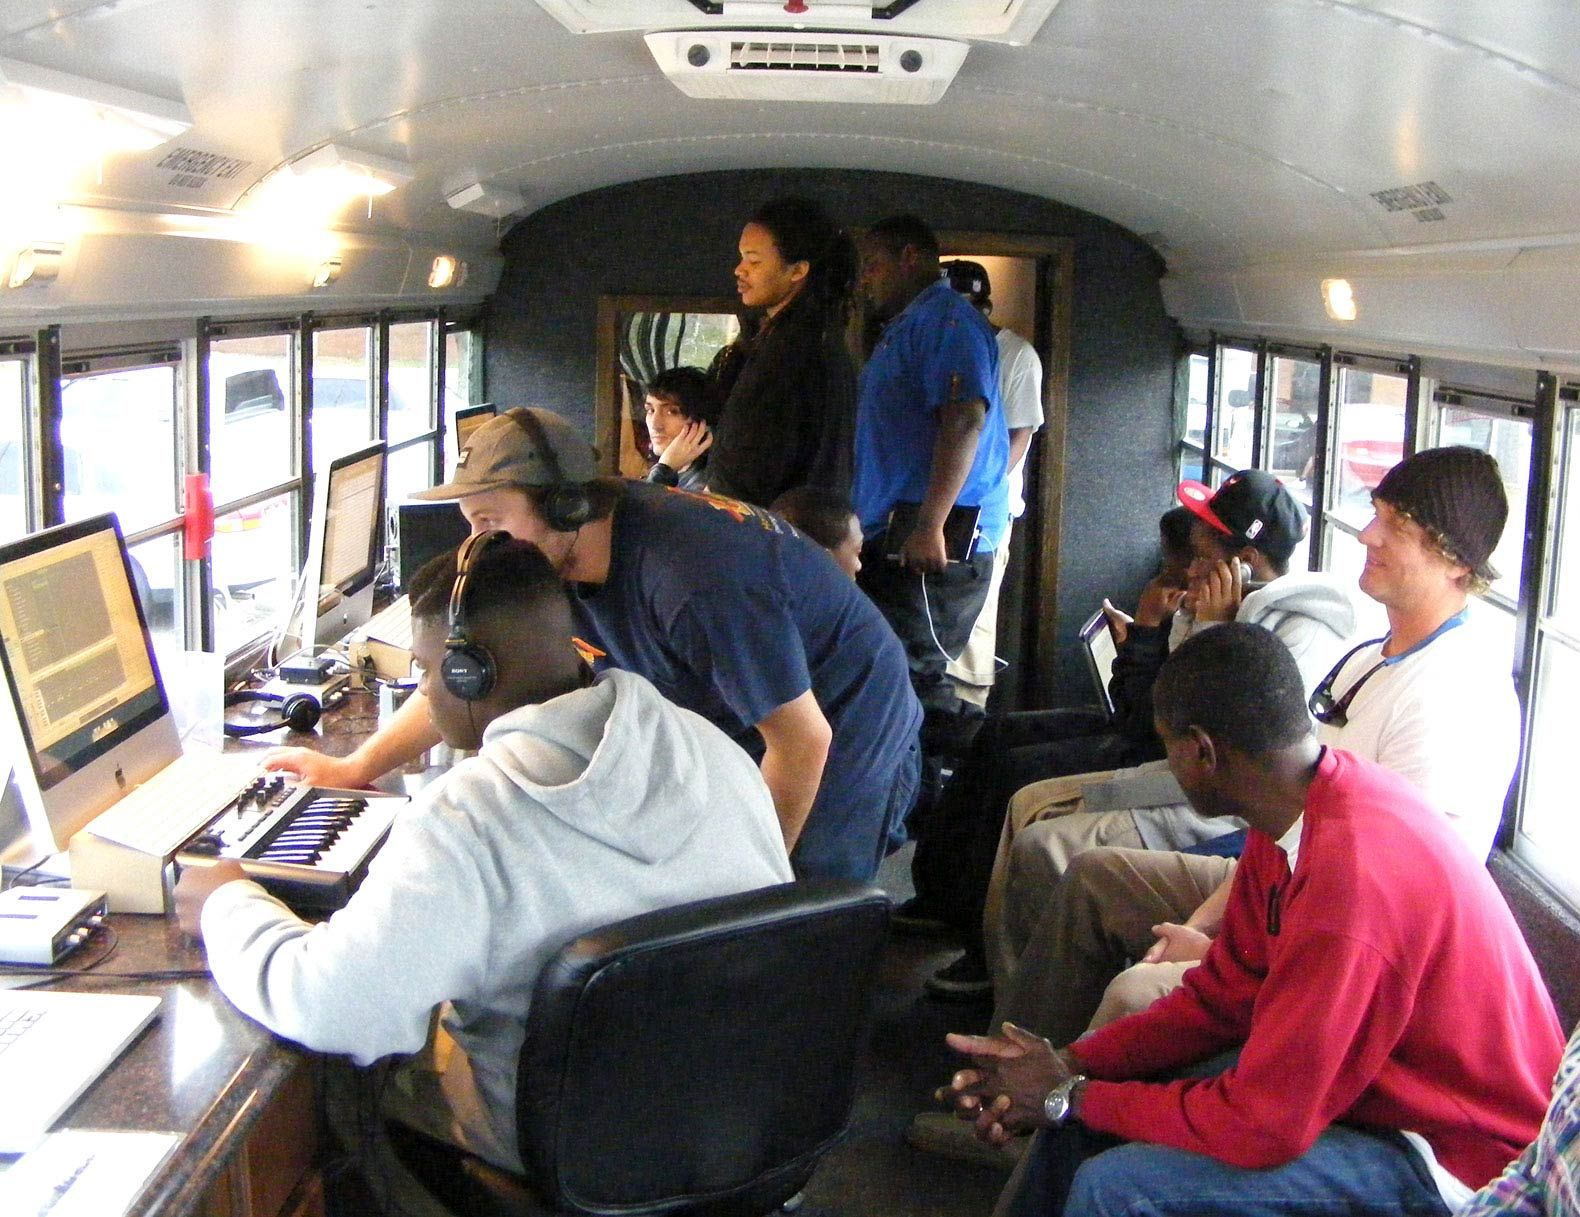 The mobile recording studio provides at-risk youths with a safe space to explore music while learning the technical skills needed to produce it.